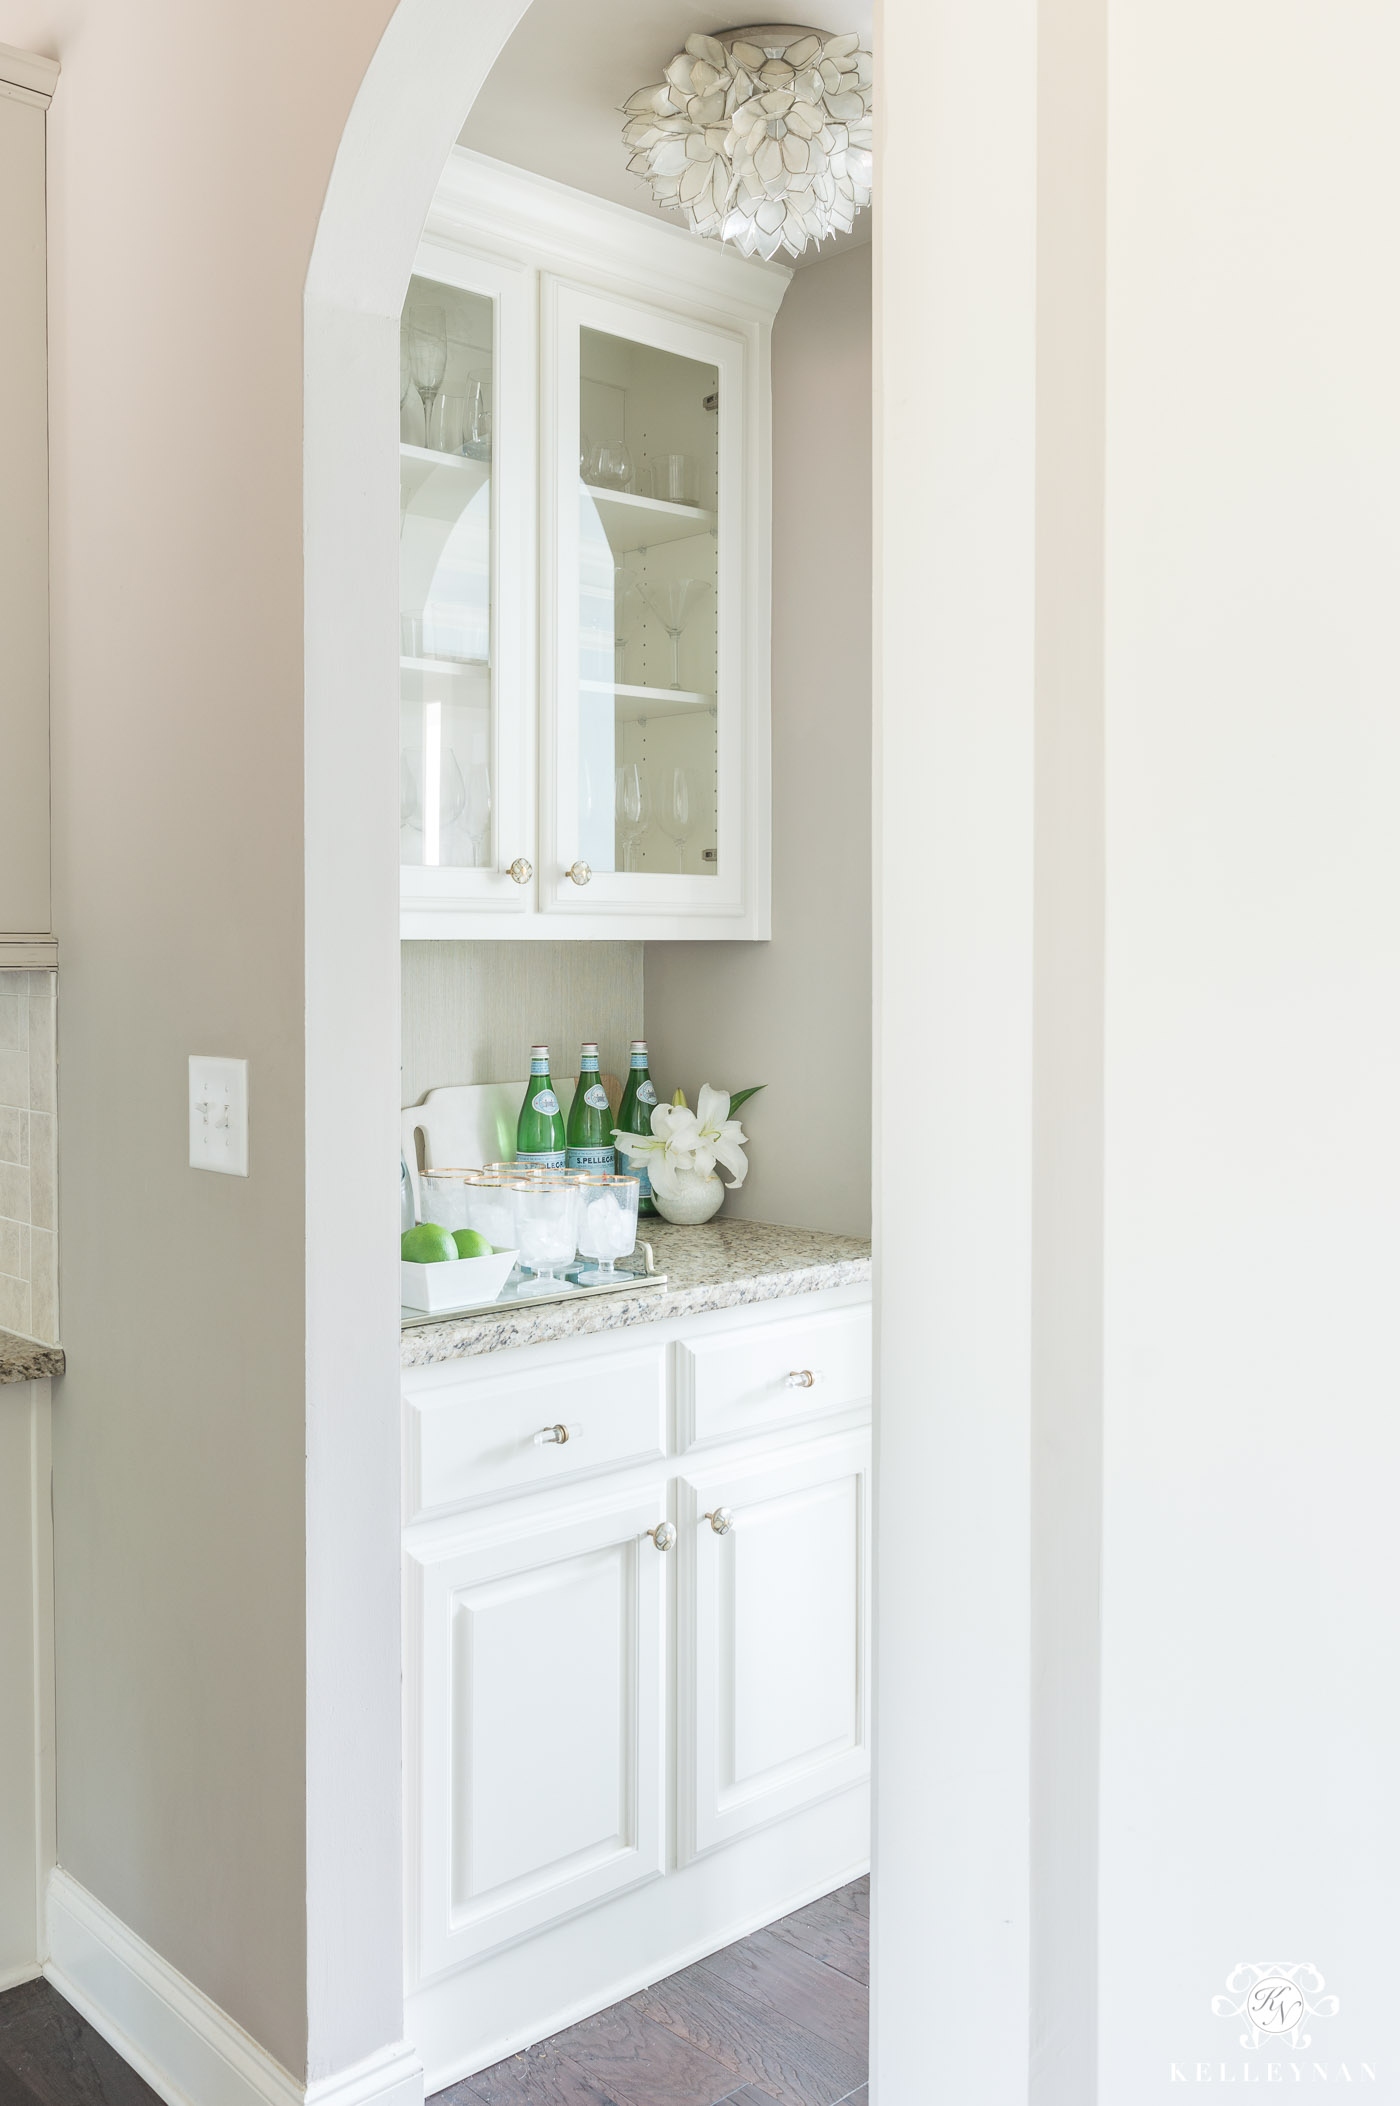 Small butler's pantry makeover with white cabinets and greige paint